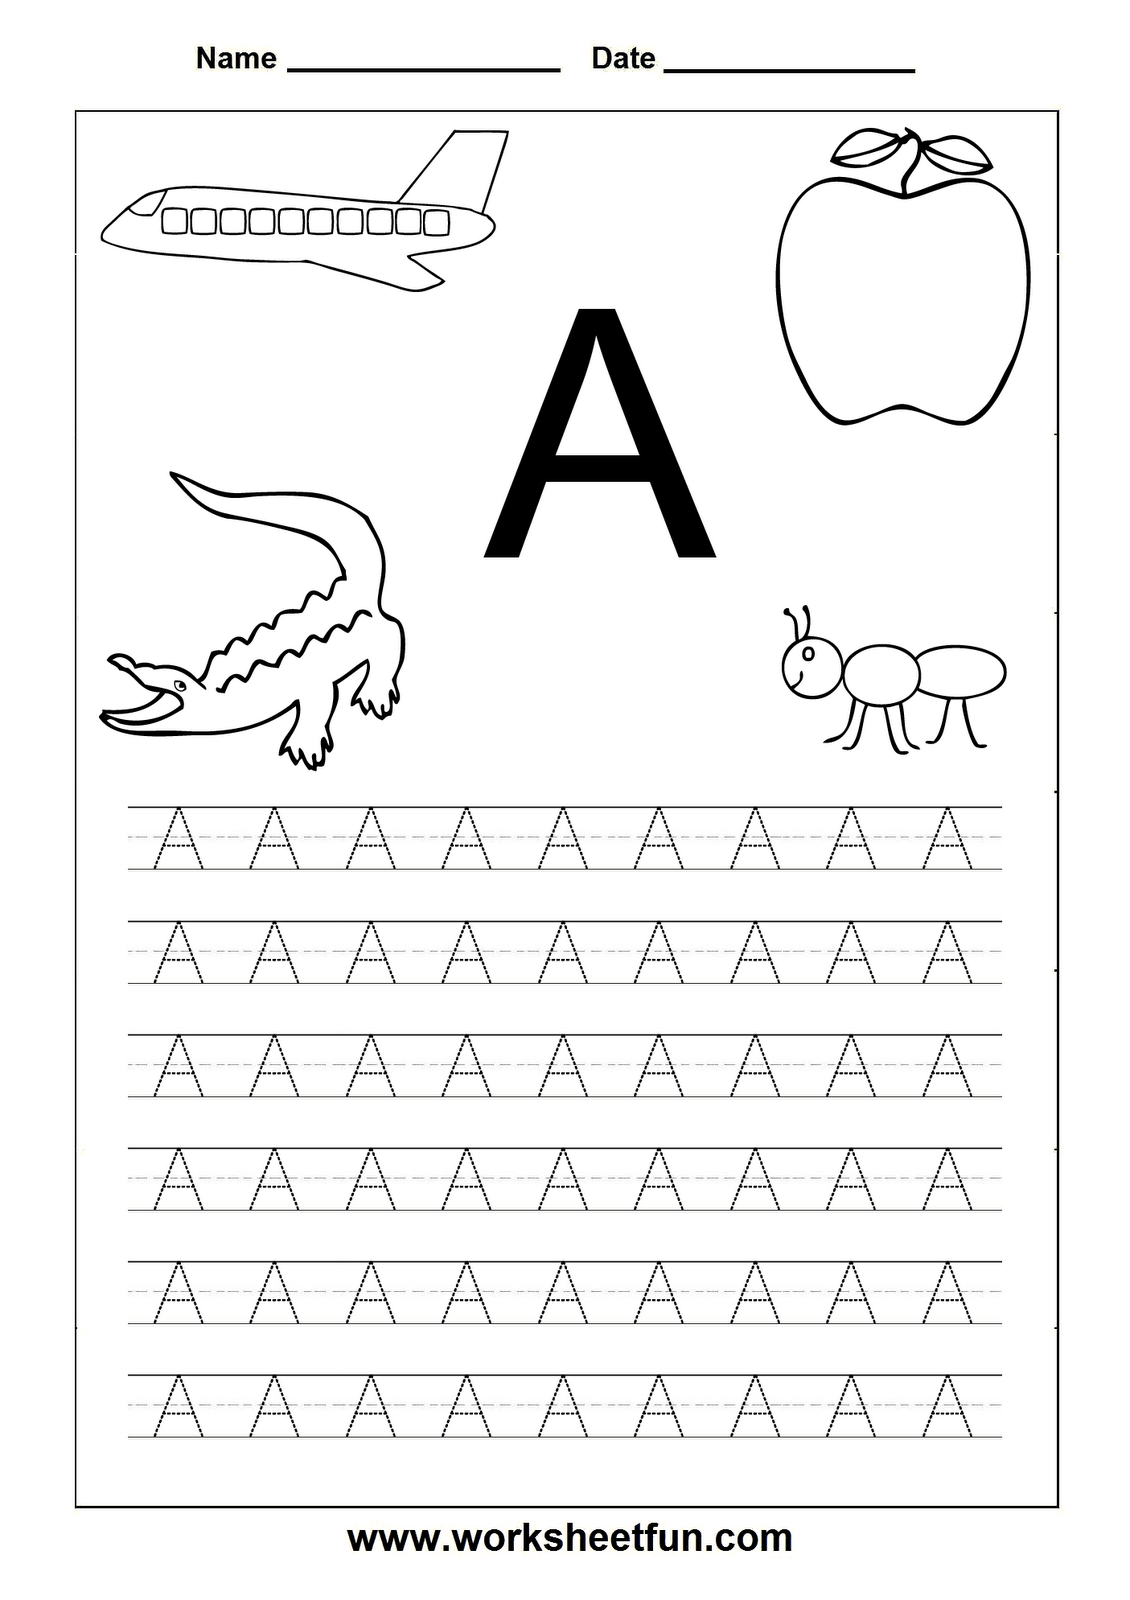 Worksheet Abc Writing Worksheets Worksheet Fun Worksheet